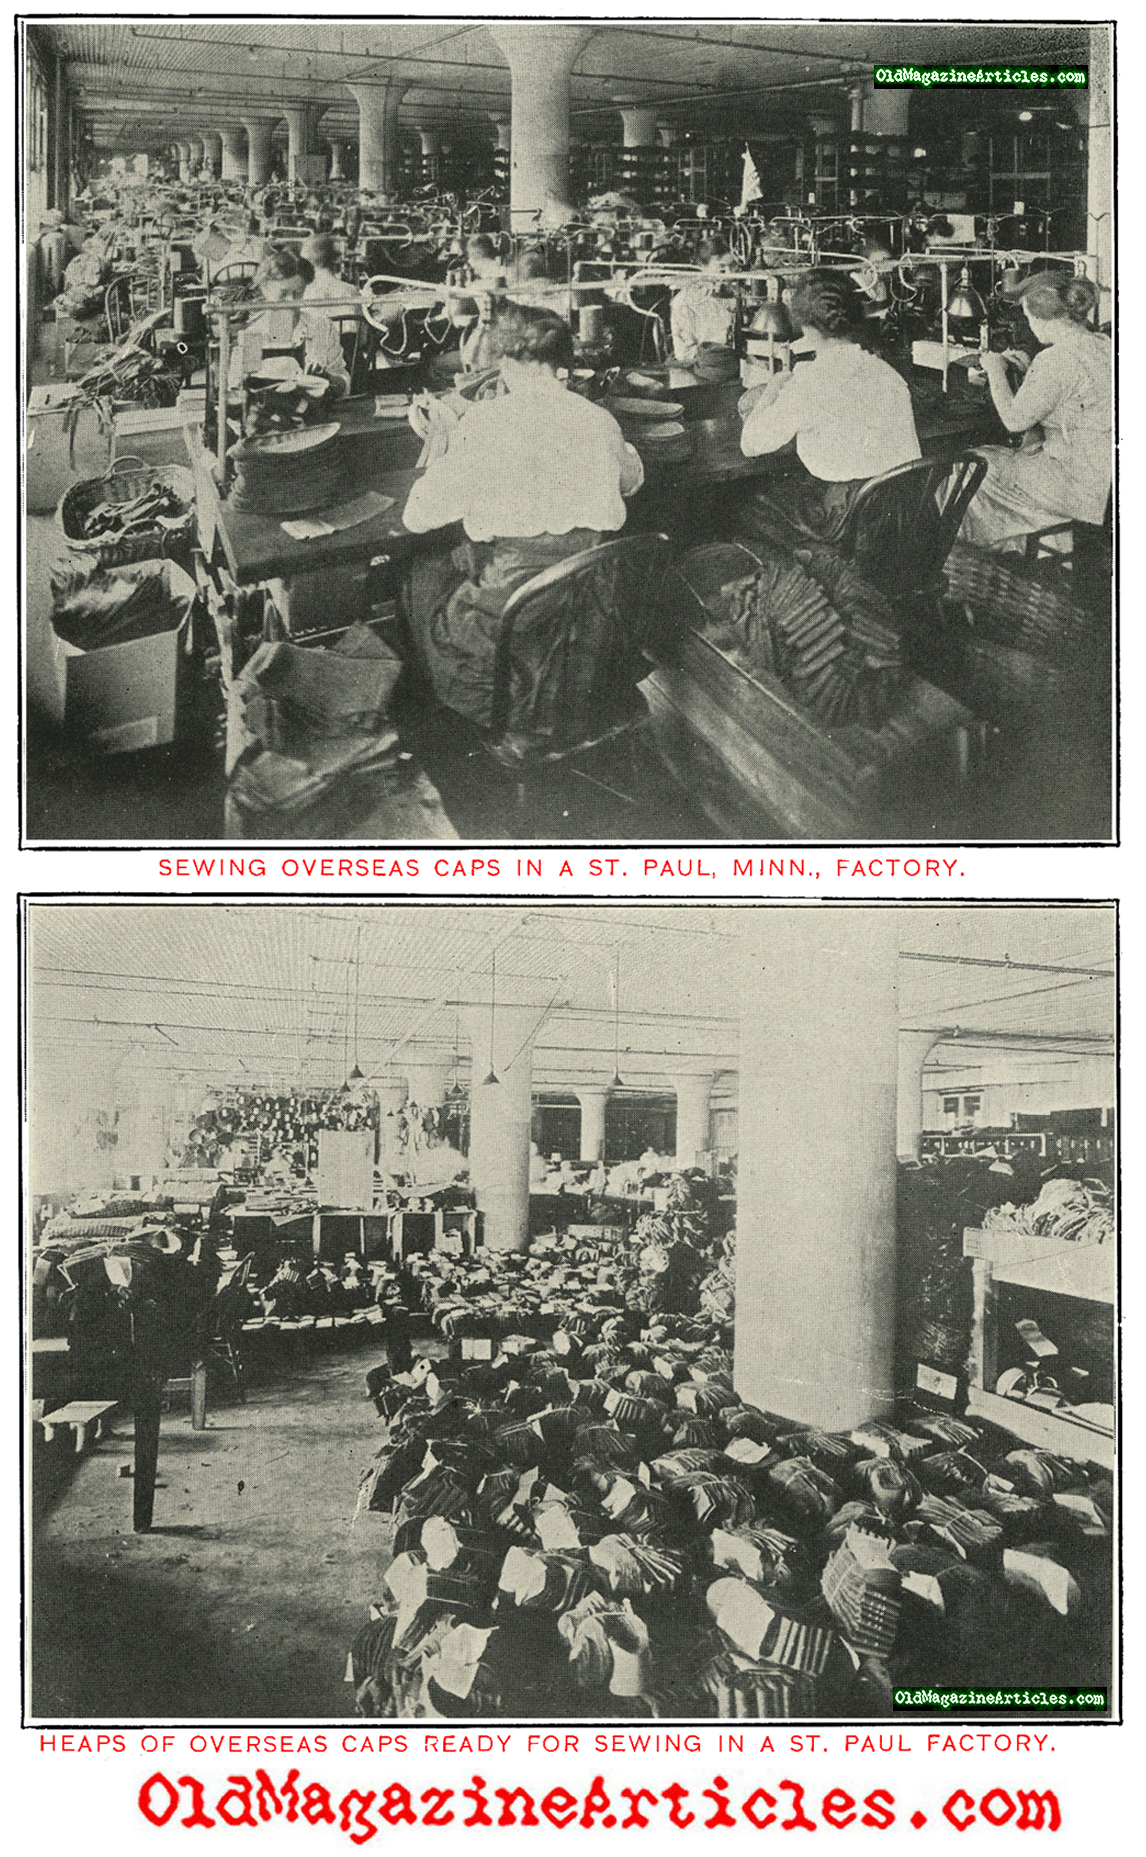 Manufacturing the Overseas Cap (America's Munitions, 1919)